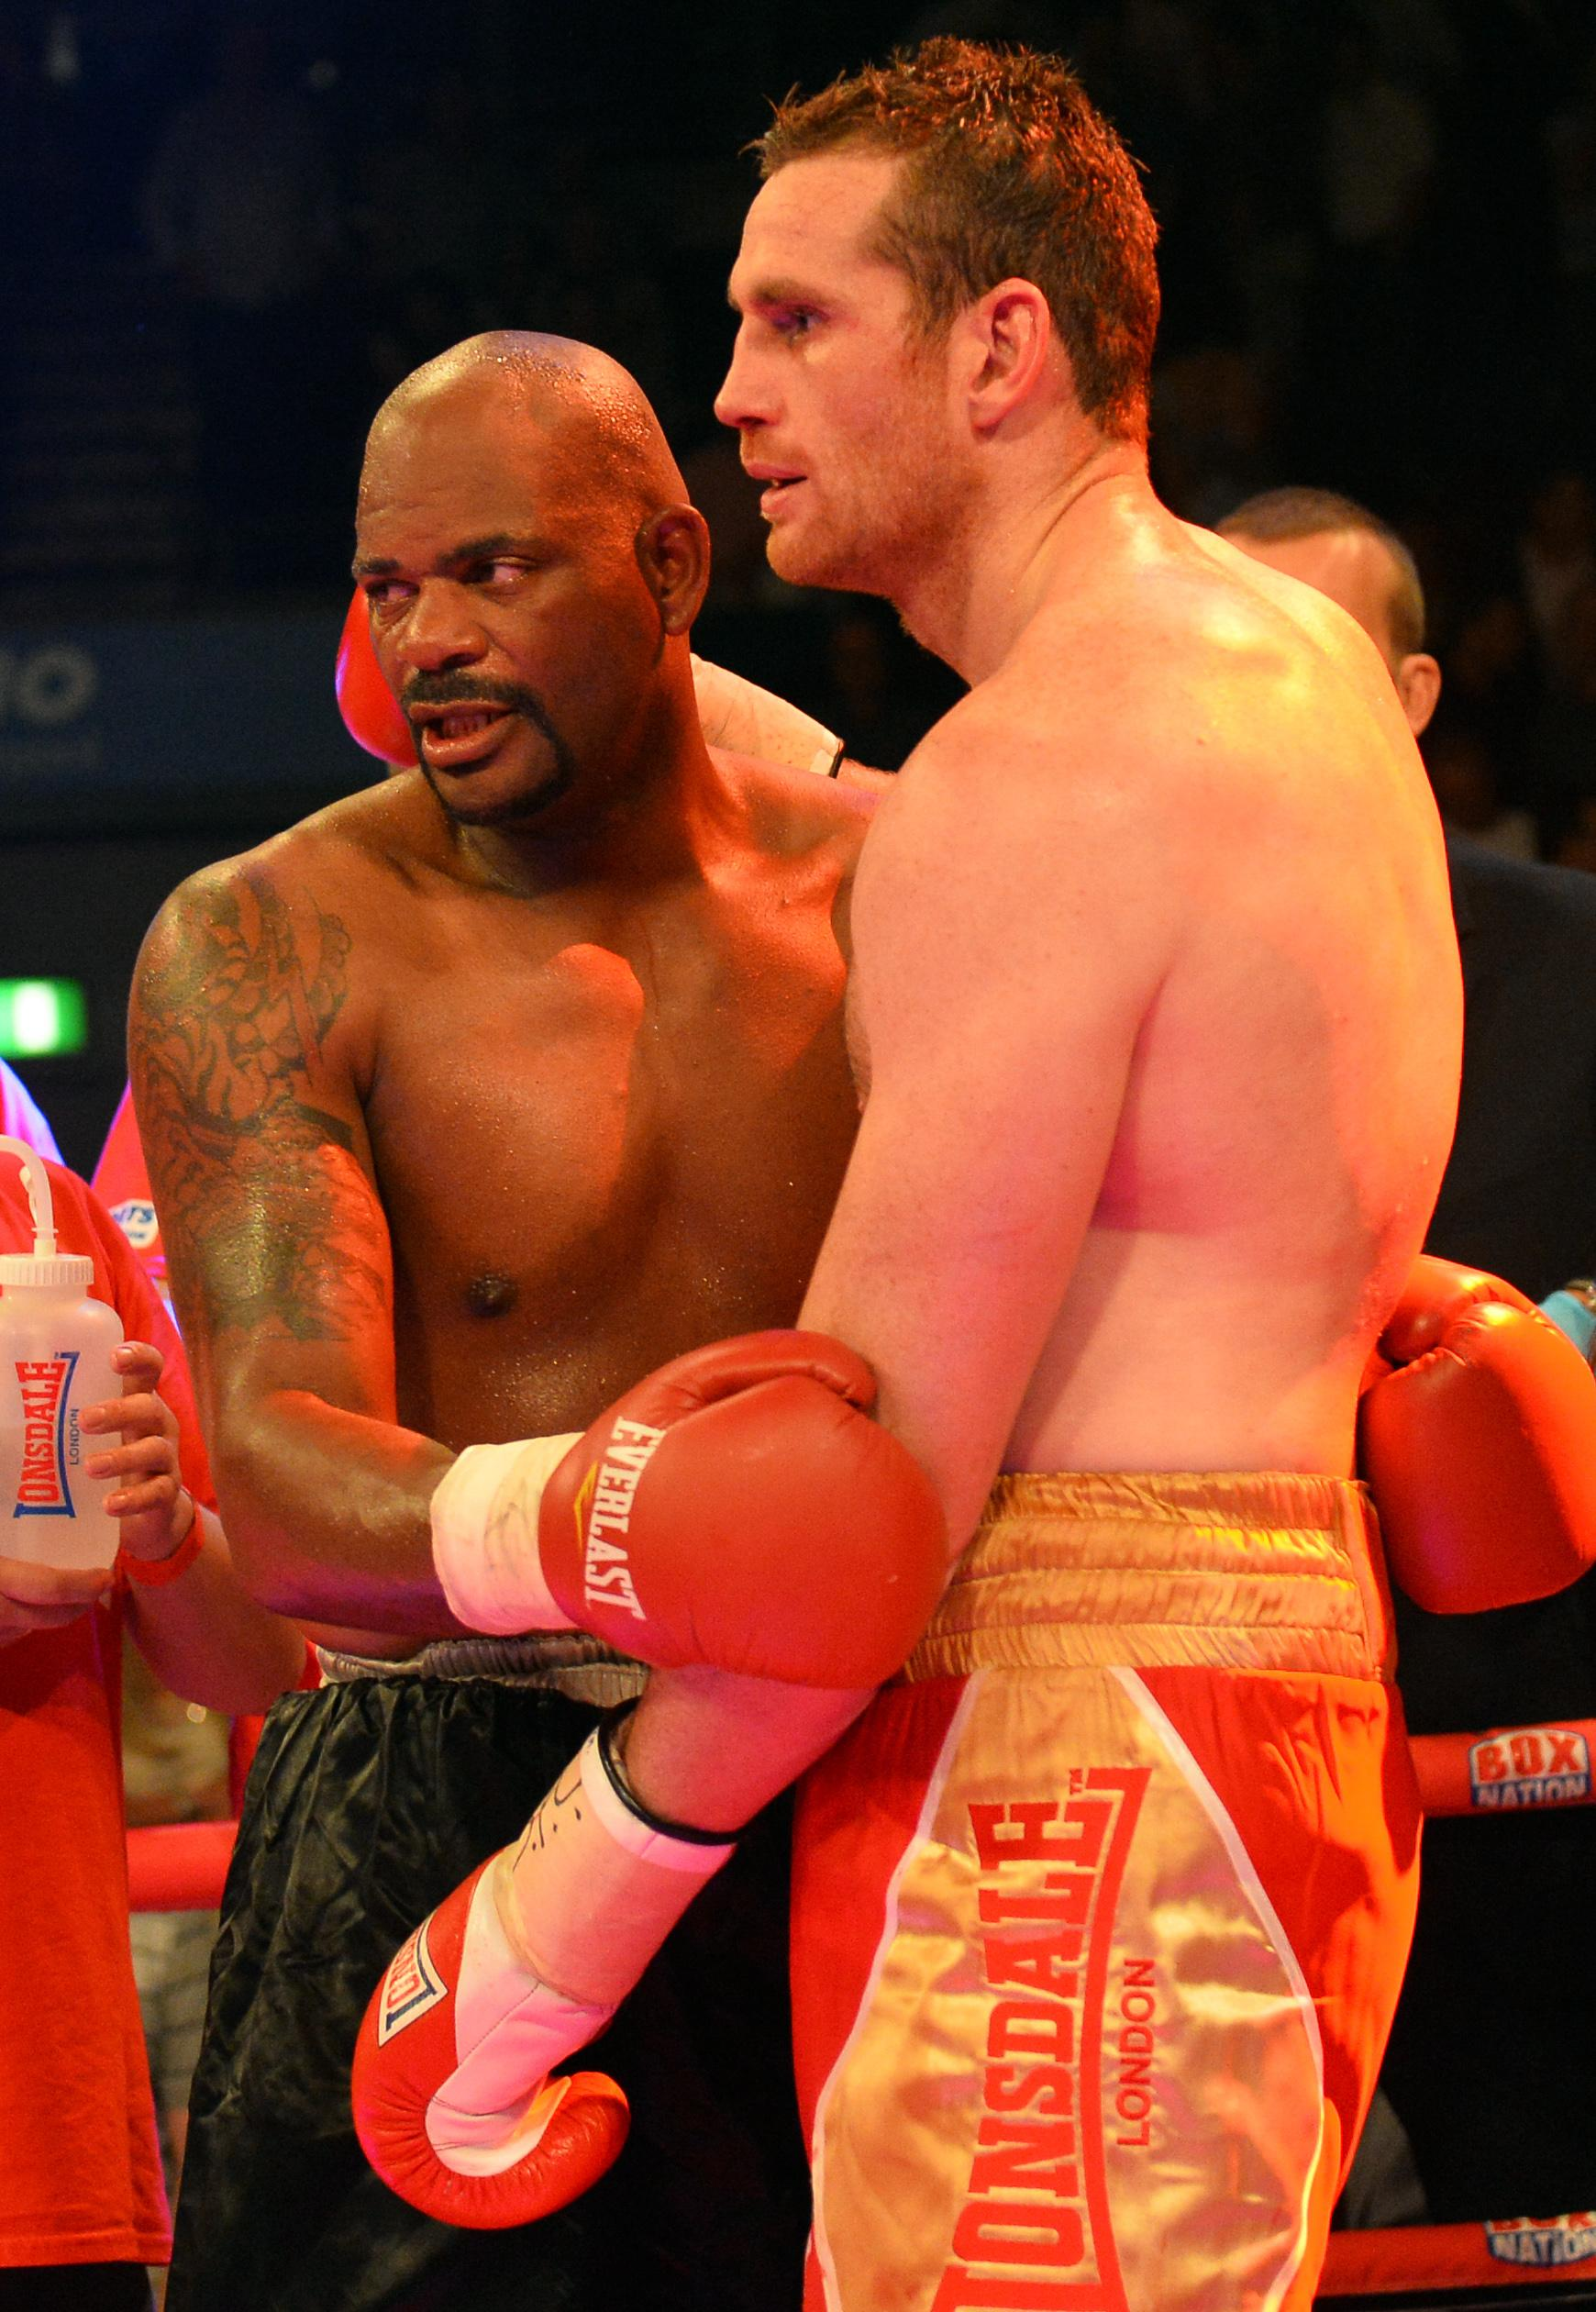 Former nemesis Tony Thompson consoles David Price after devastating KO defeat in rematch